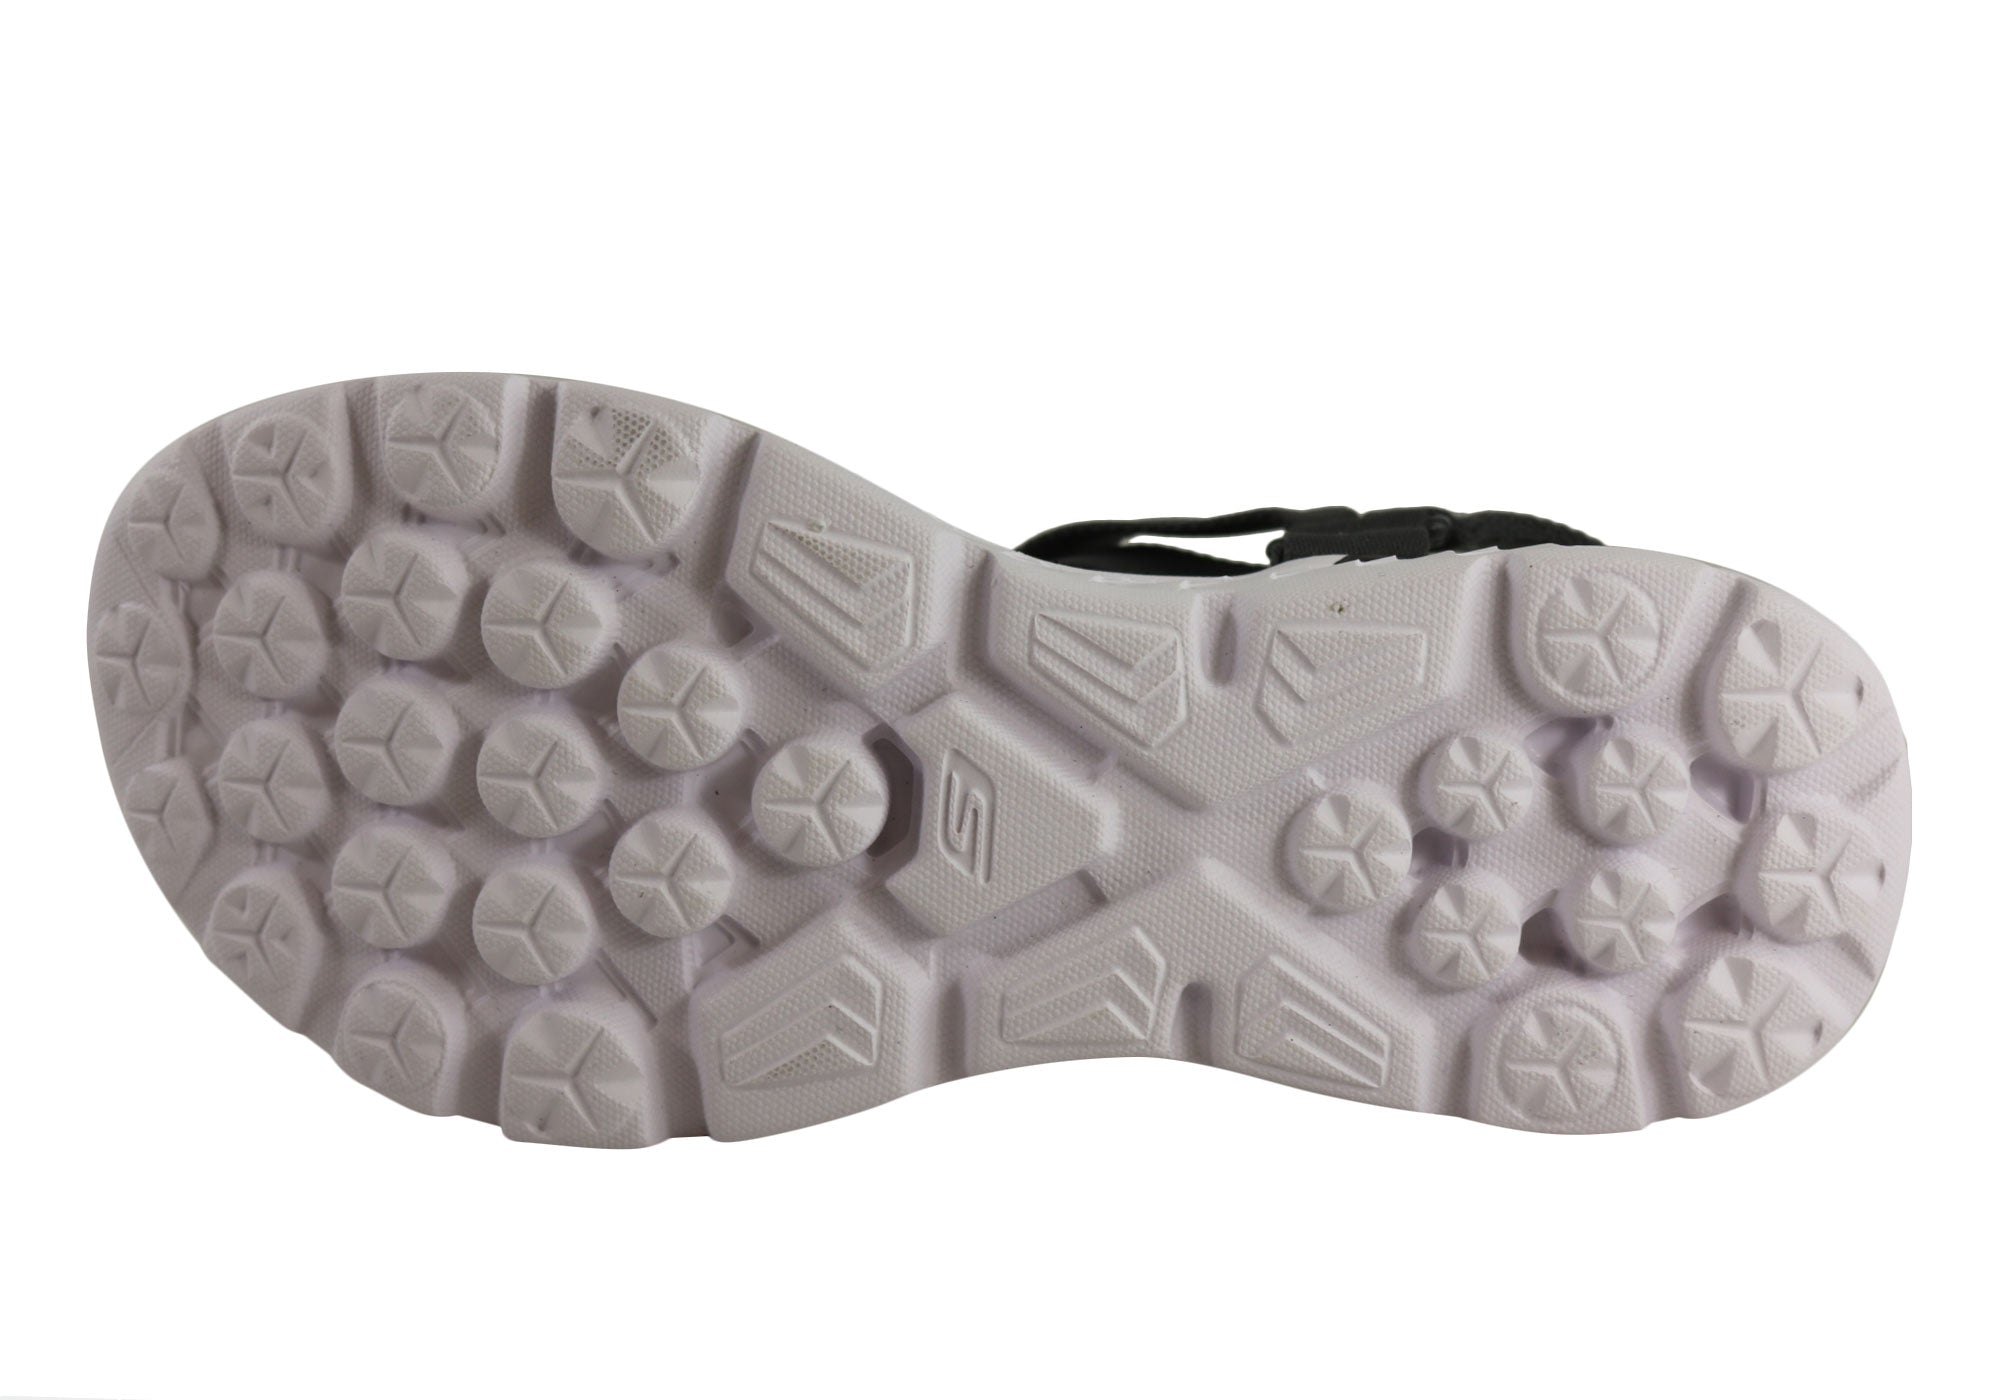 923b014df5b1 Home Skechers On The Go 400 Jazzy Womens Comfort Lightweight Sandals. Black Grey  · Black Grey · Black Grey · Black Grey · Black Grey · Black Grey · Black   ...